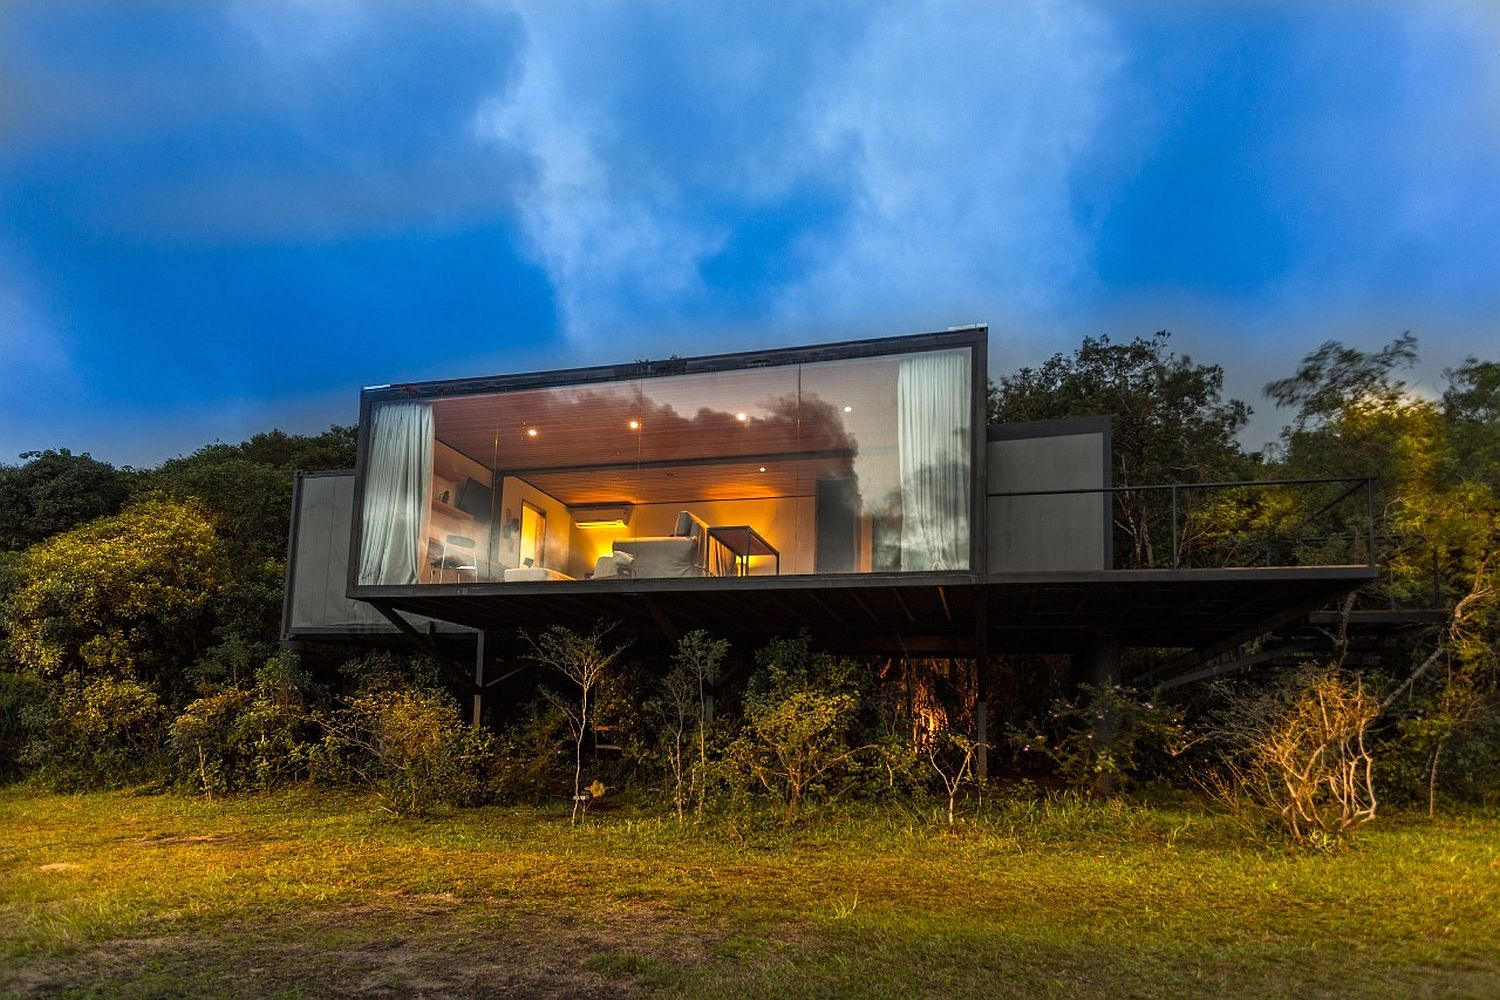 Elevated-design-o-the-cabin-overlooks-the-forest-and-green-landscape-outside